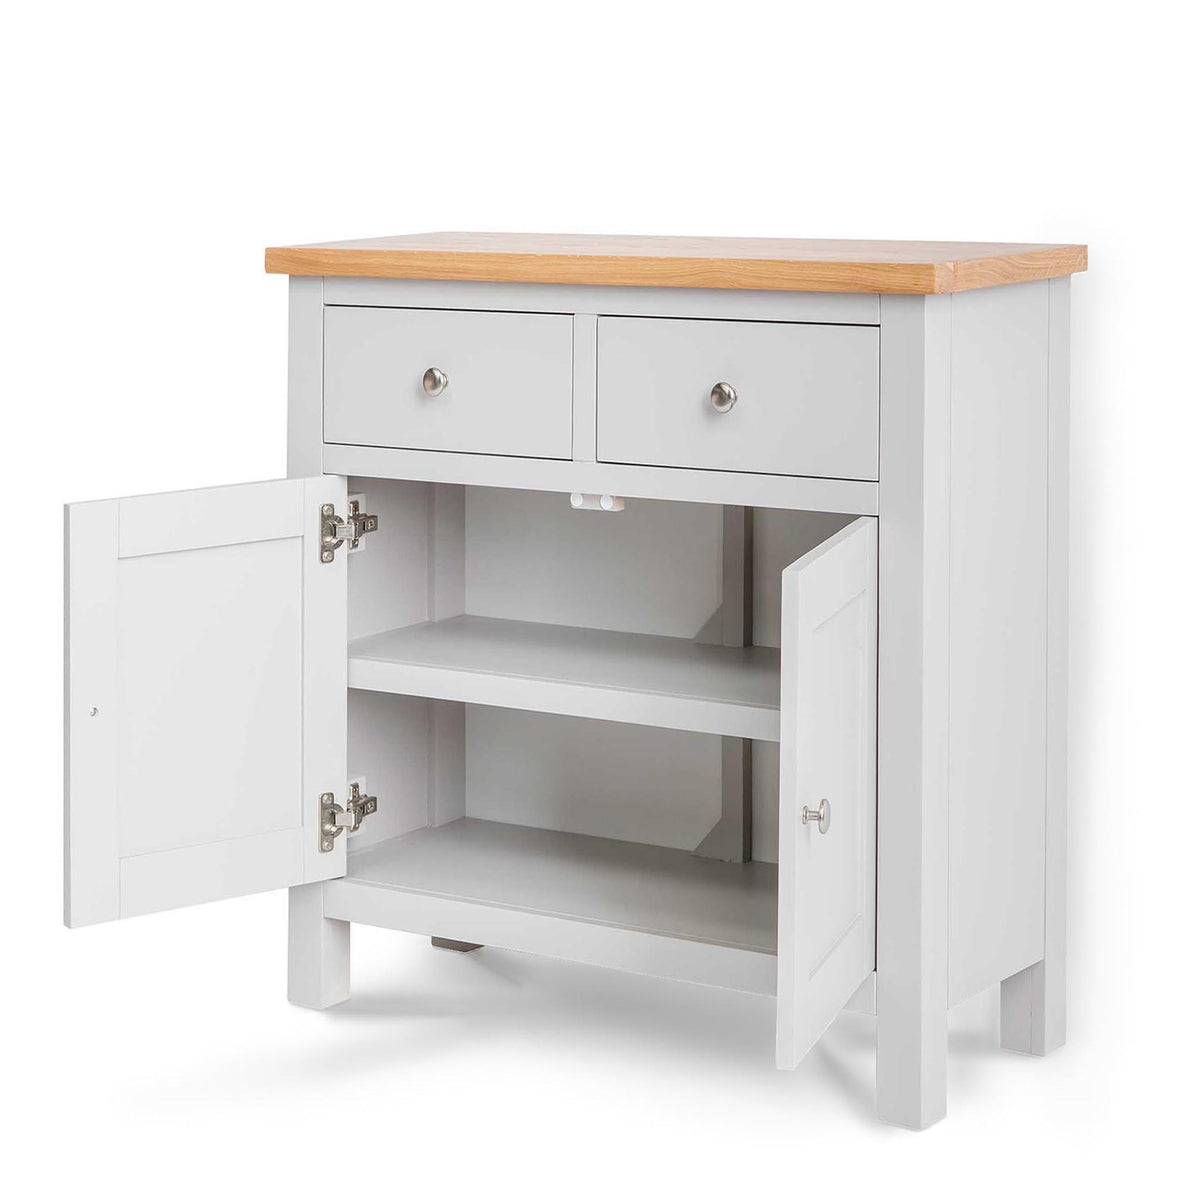 Farrow Grey Mini Sideboard - Side view with cupboard doors open